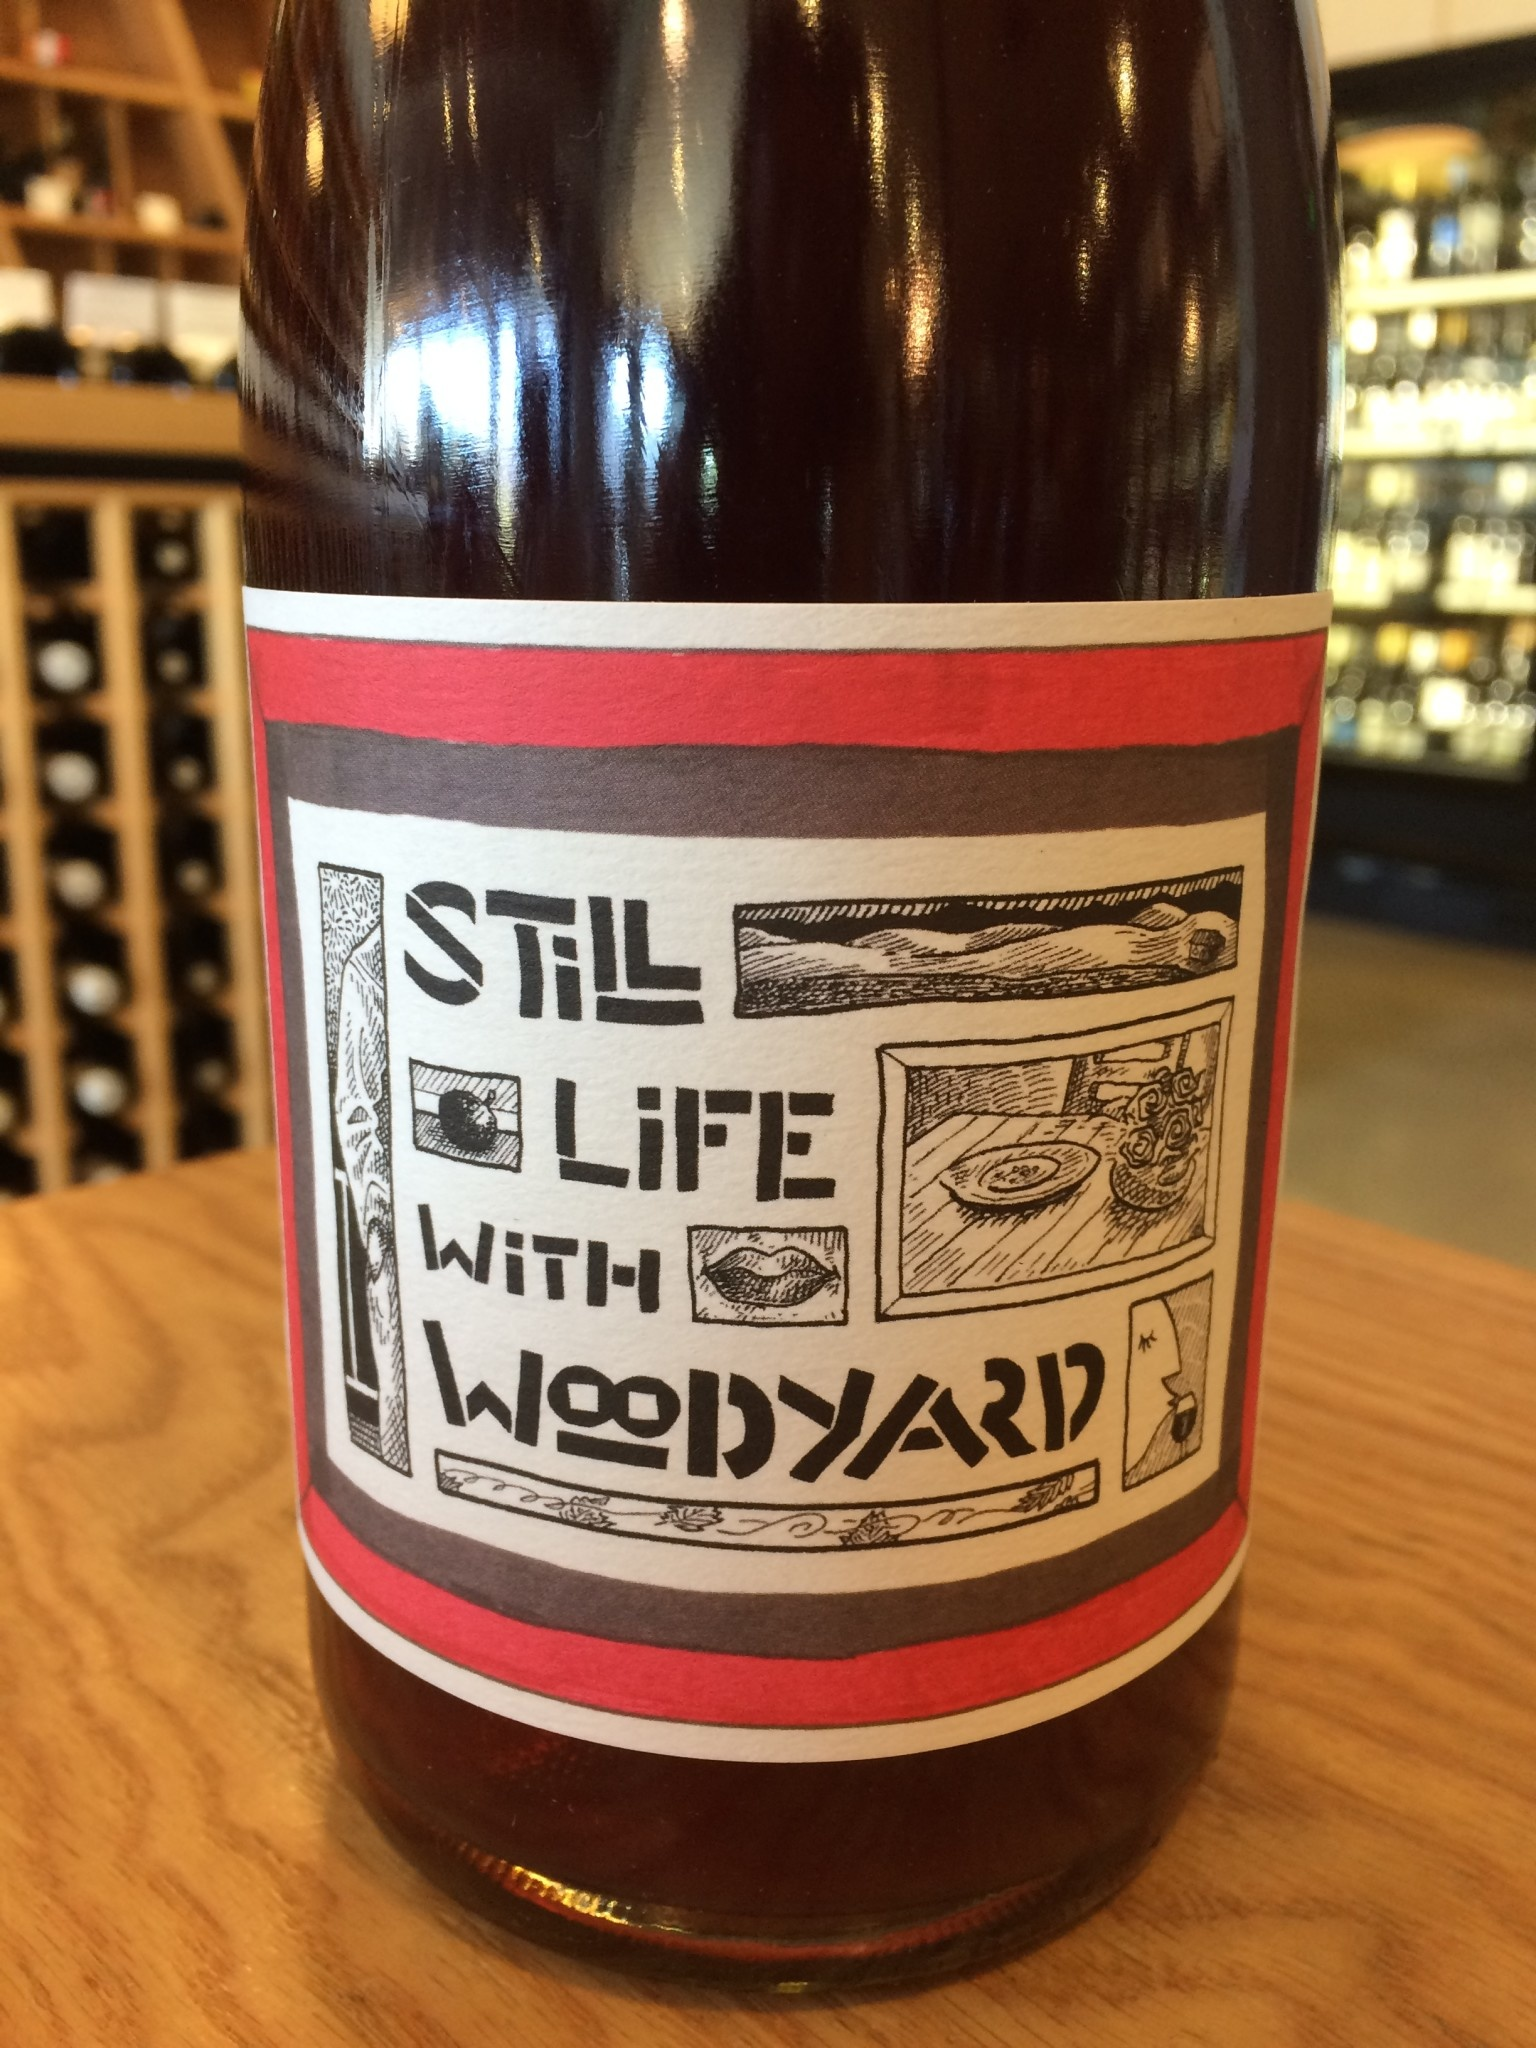 Stagiaire 2018 Stagiare Still Life with Woodyard Zinfandel 750ml